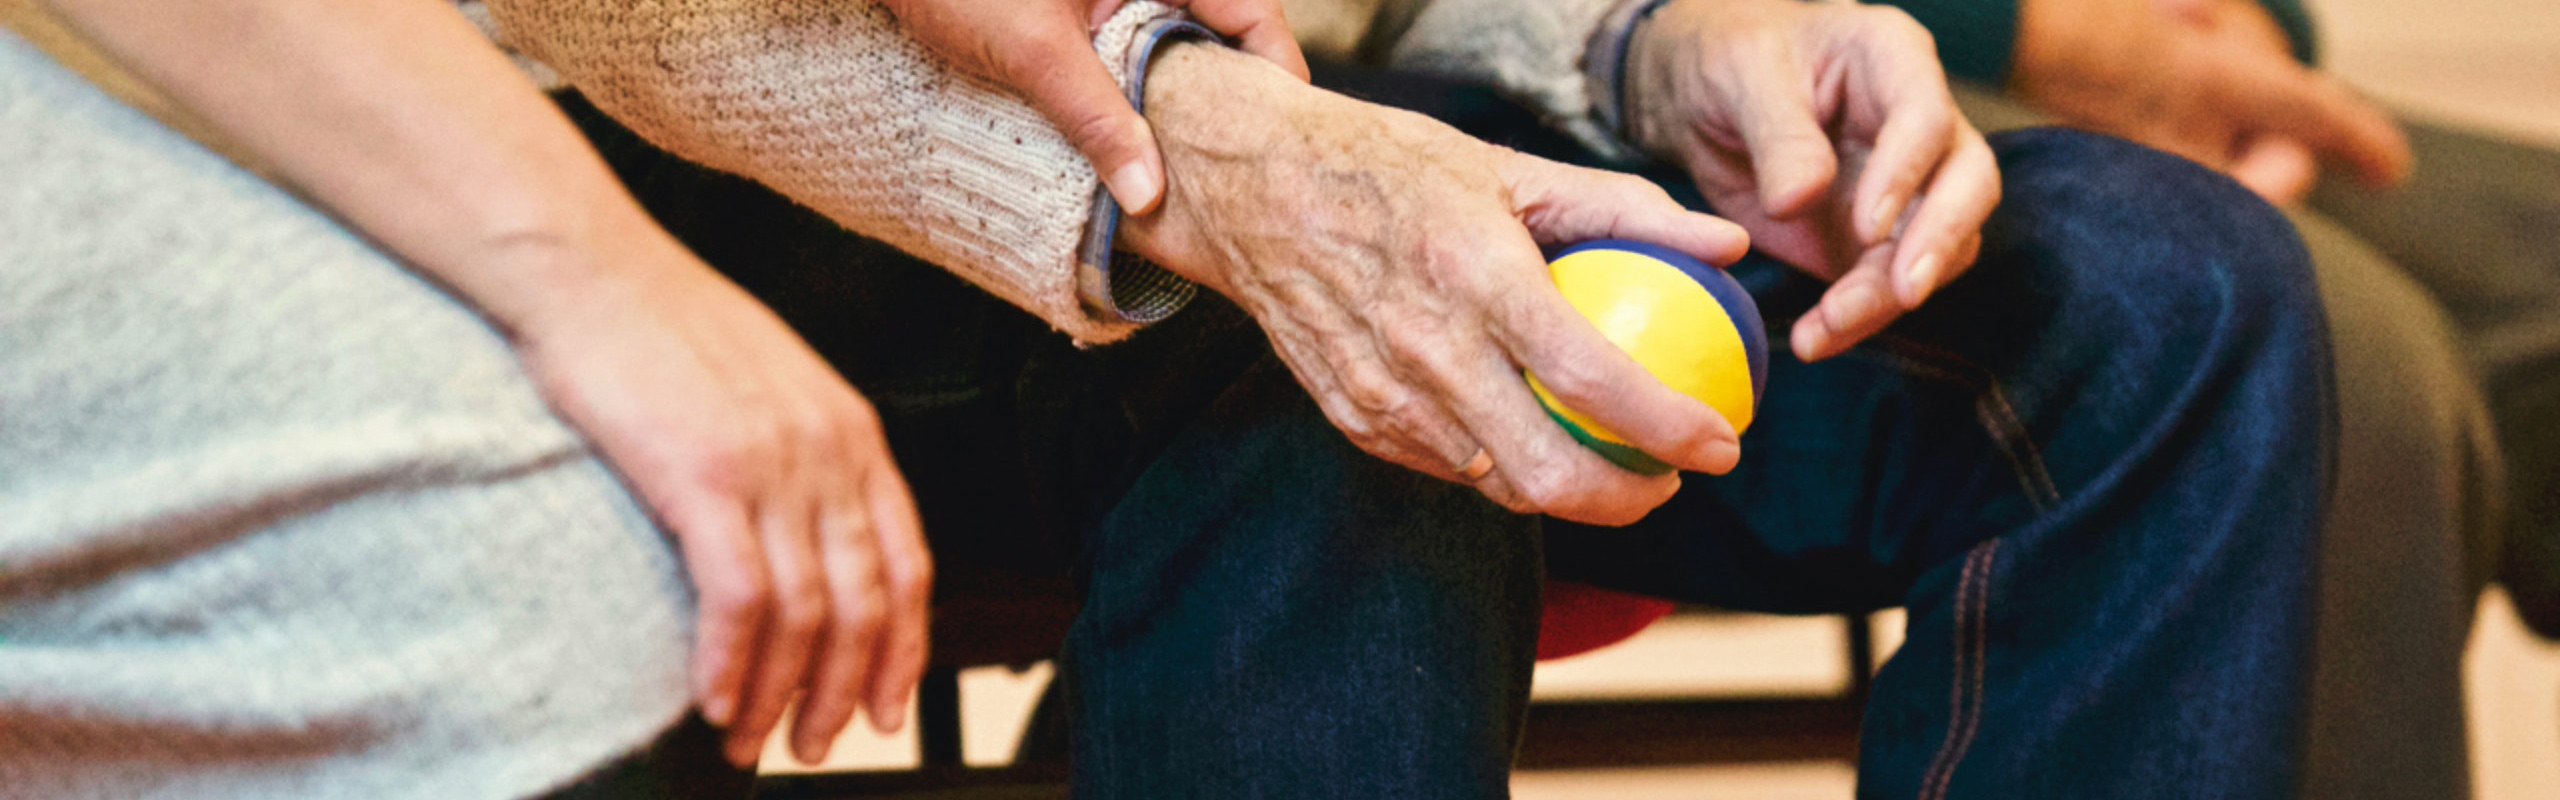 Stock photograph of a carer supporting an elderly person